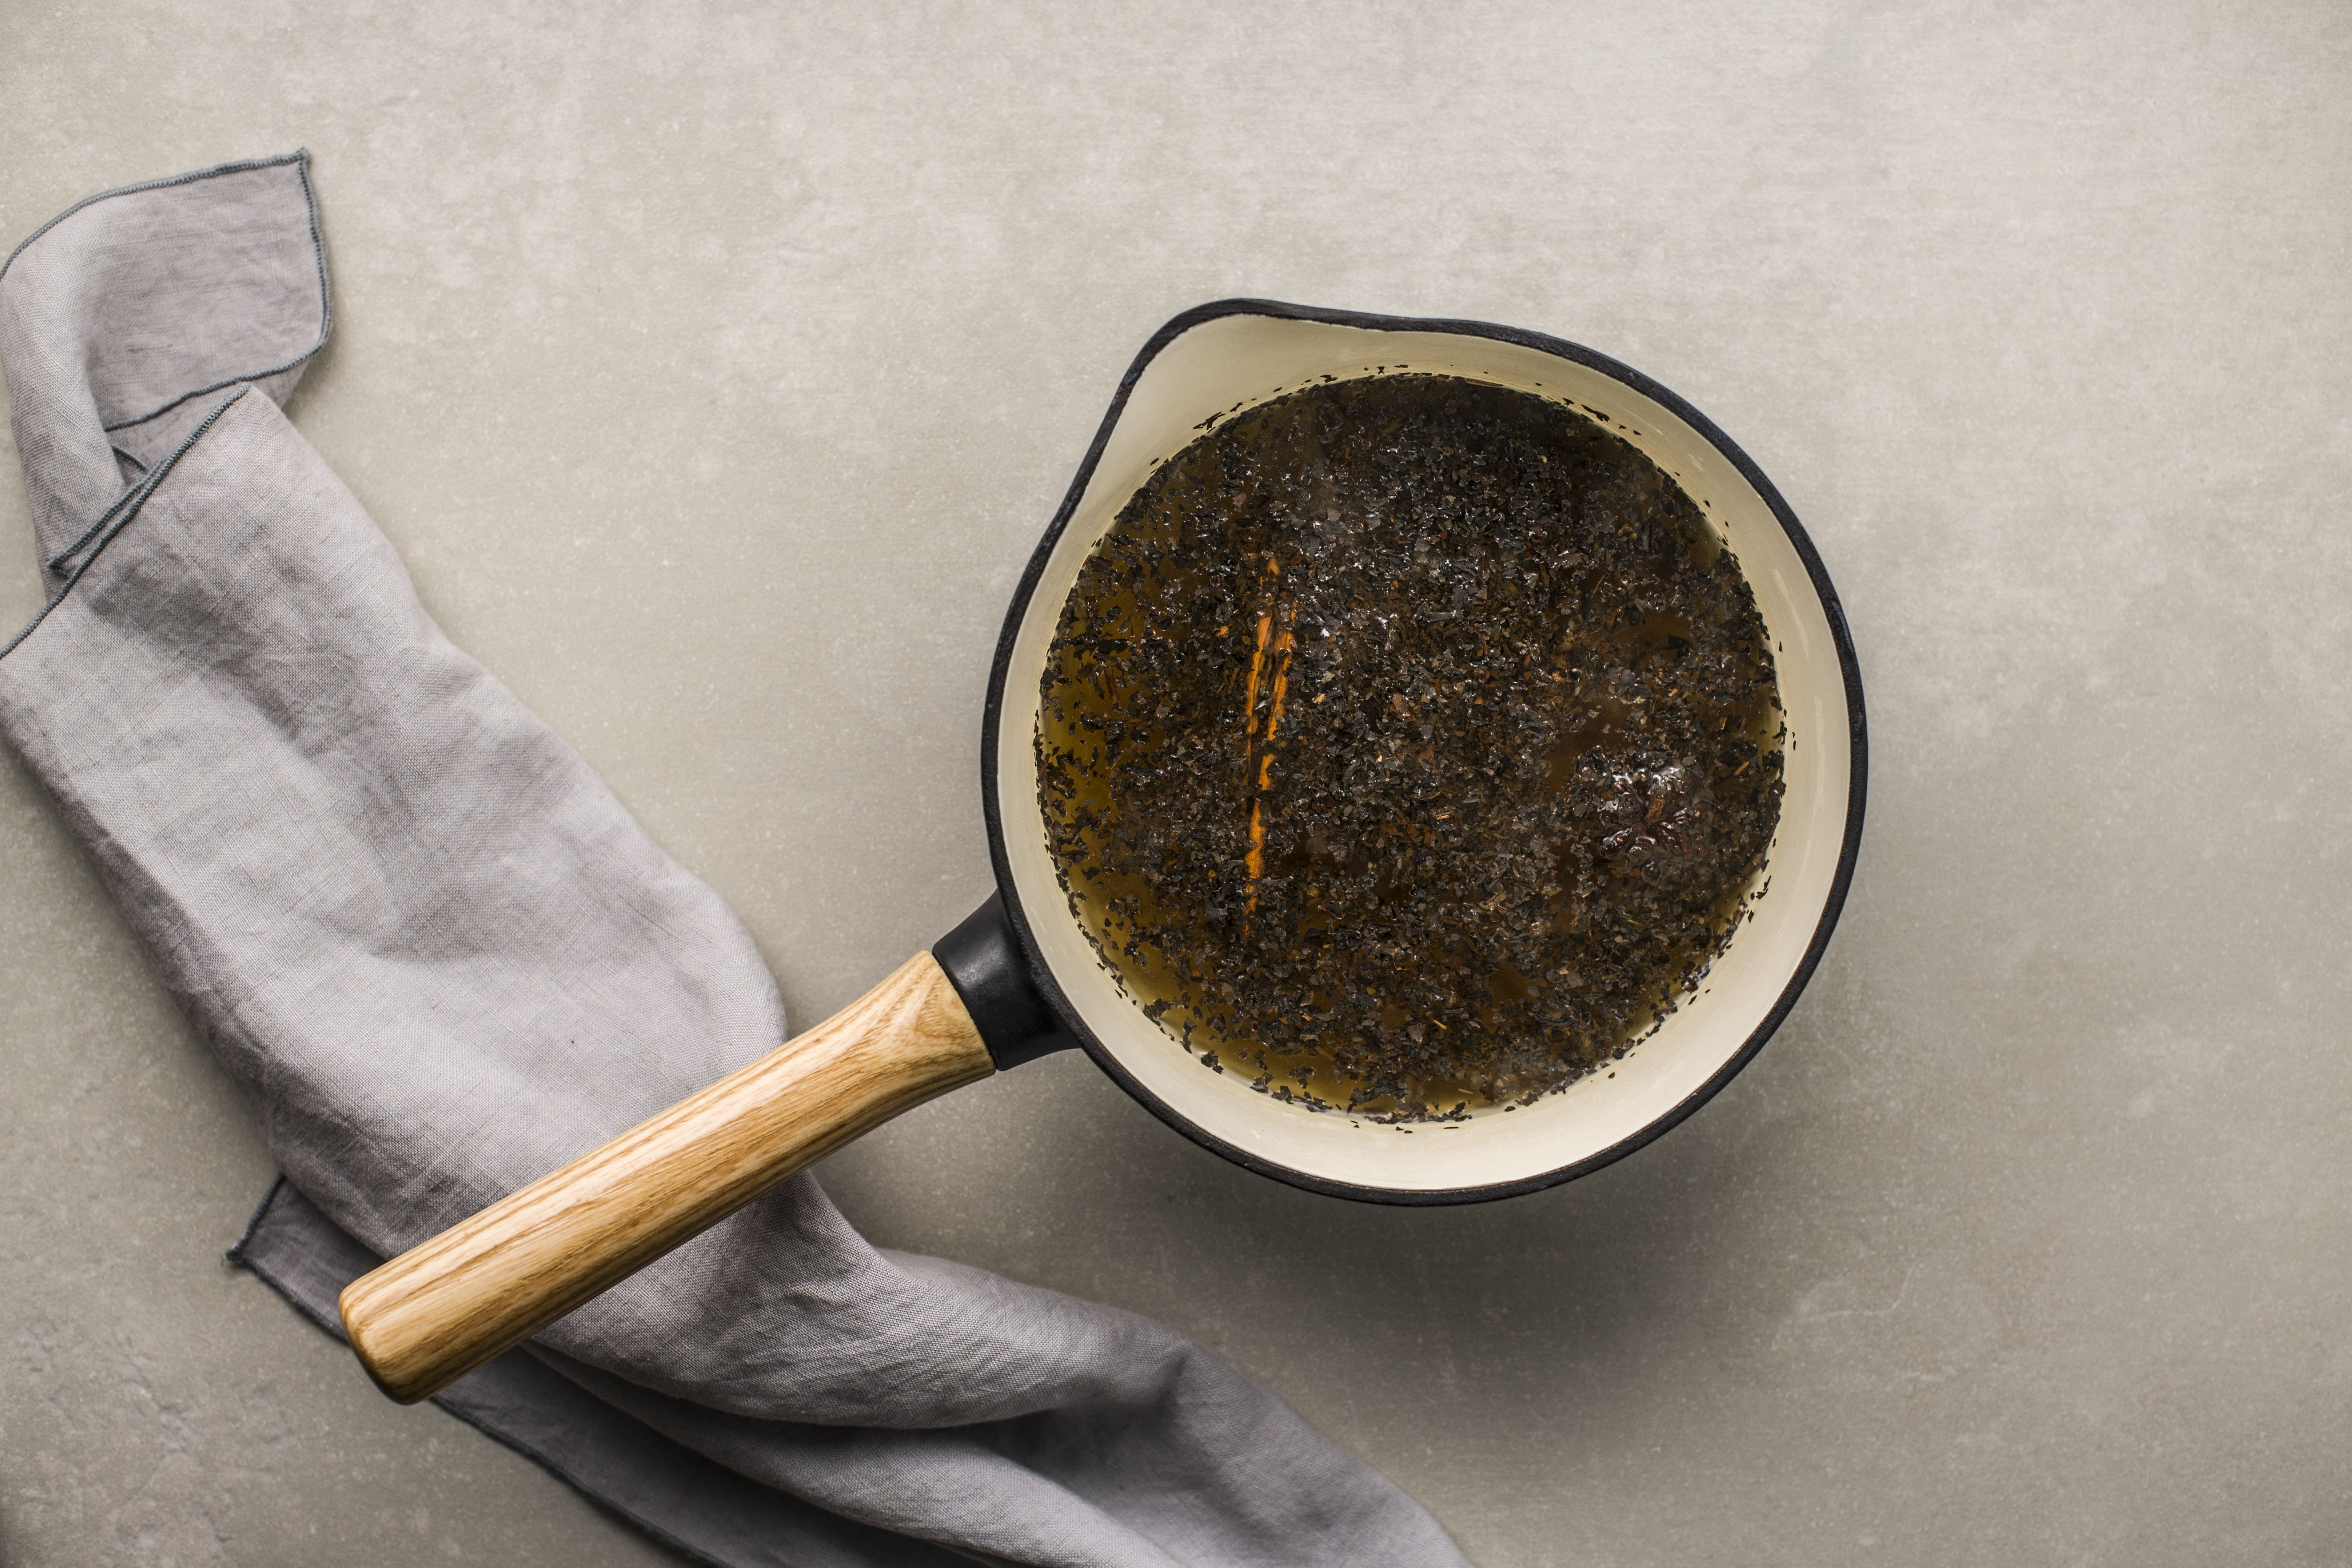 Tea steeping in a pot for black tea hot toddy